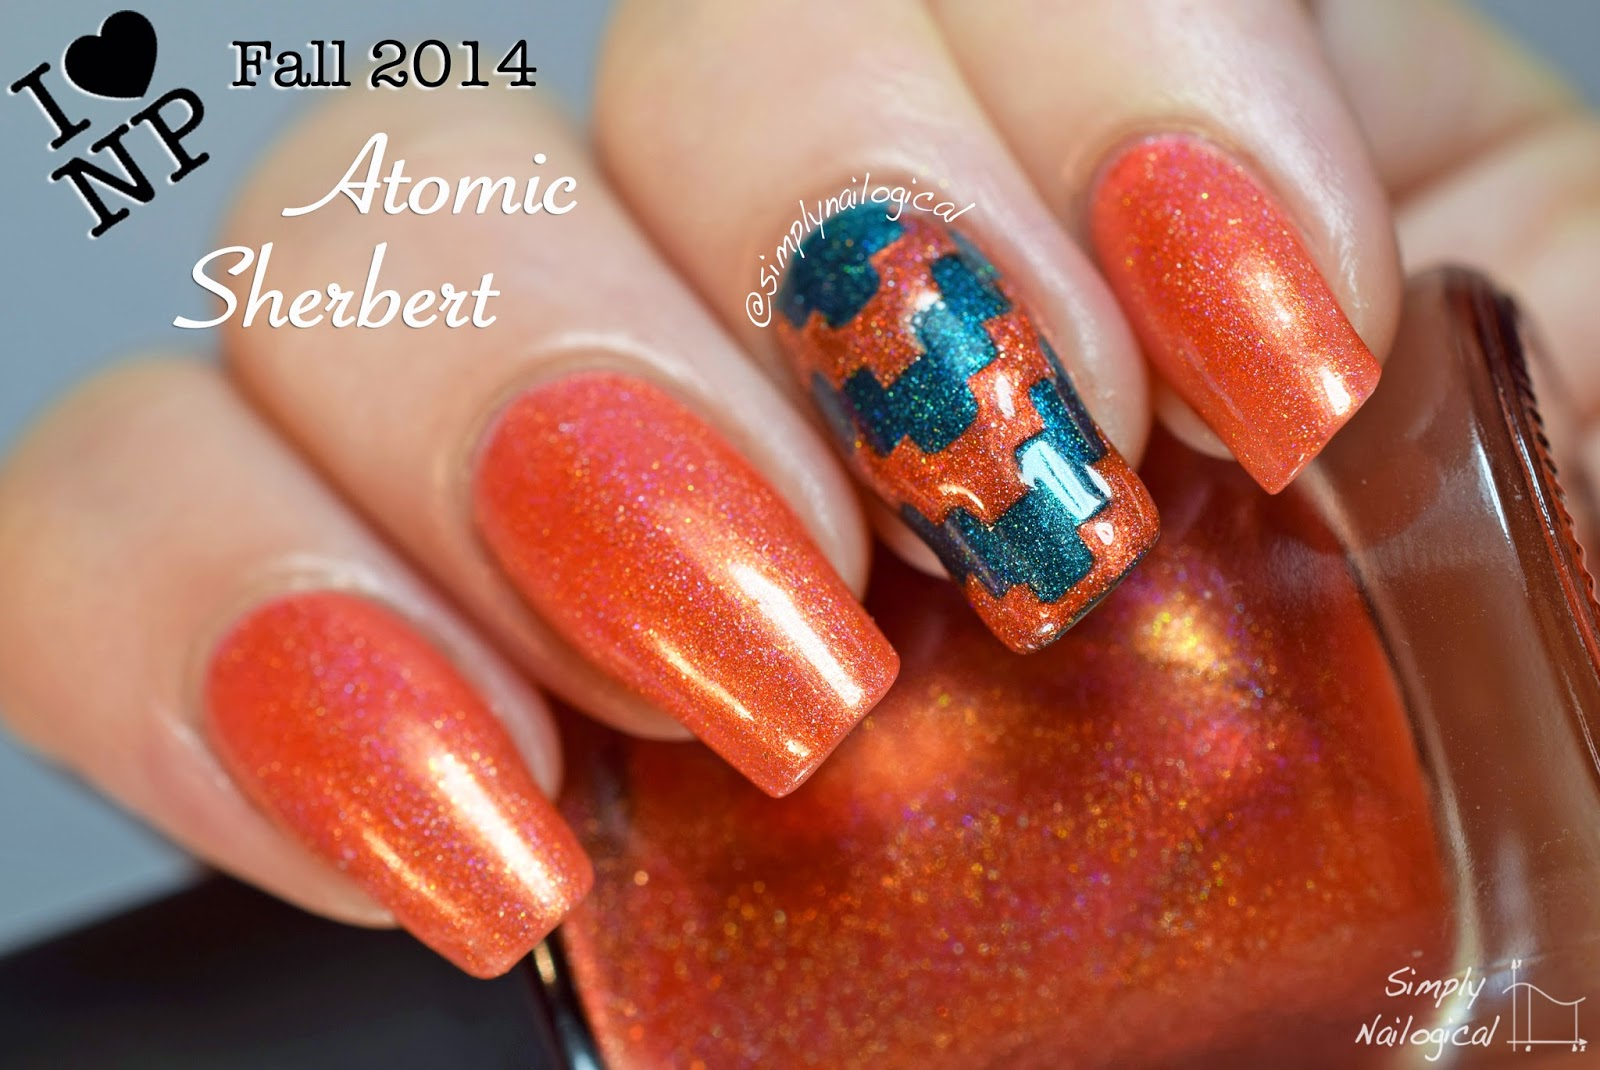 Atomic Sherbert - ILNP Fall 2014 collection swatch